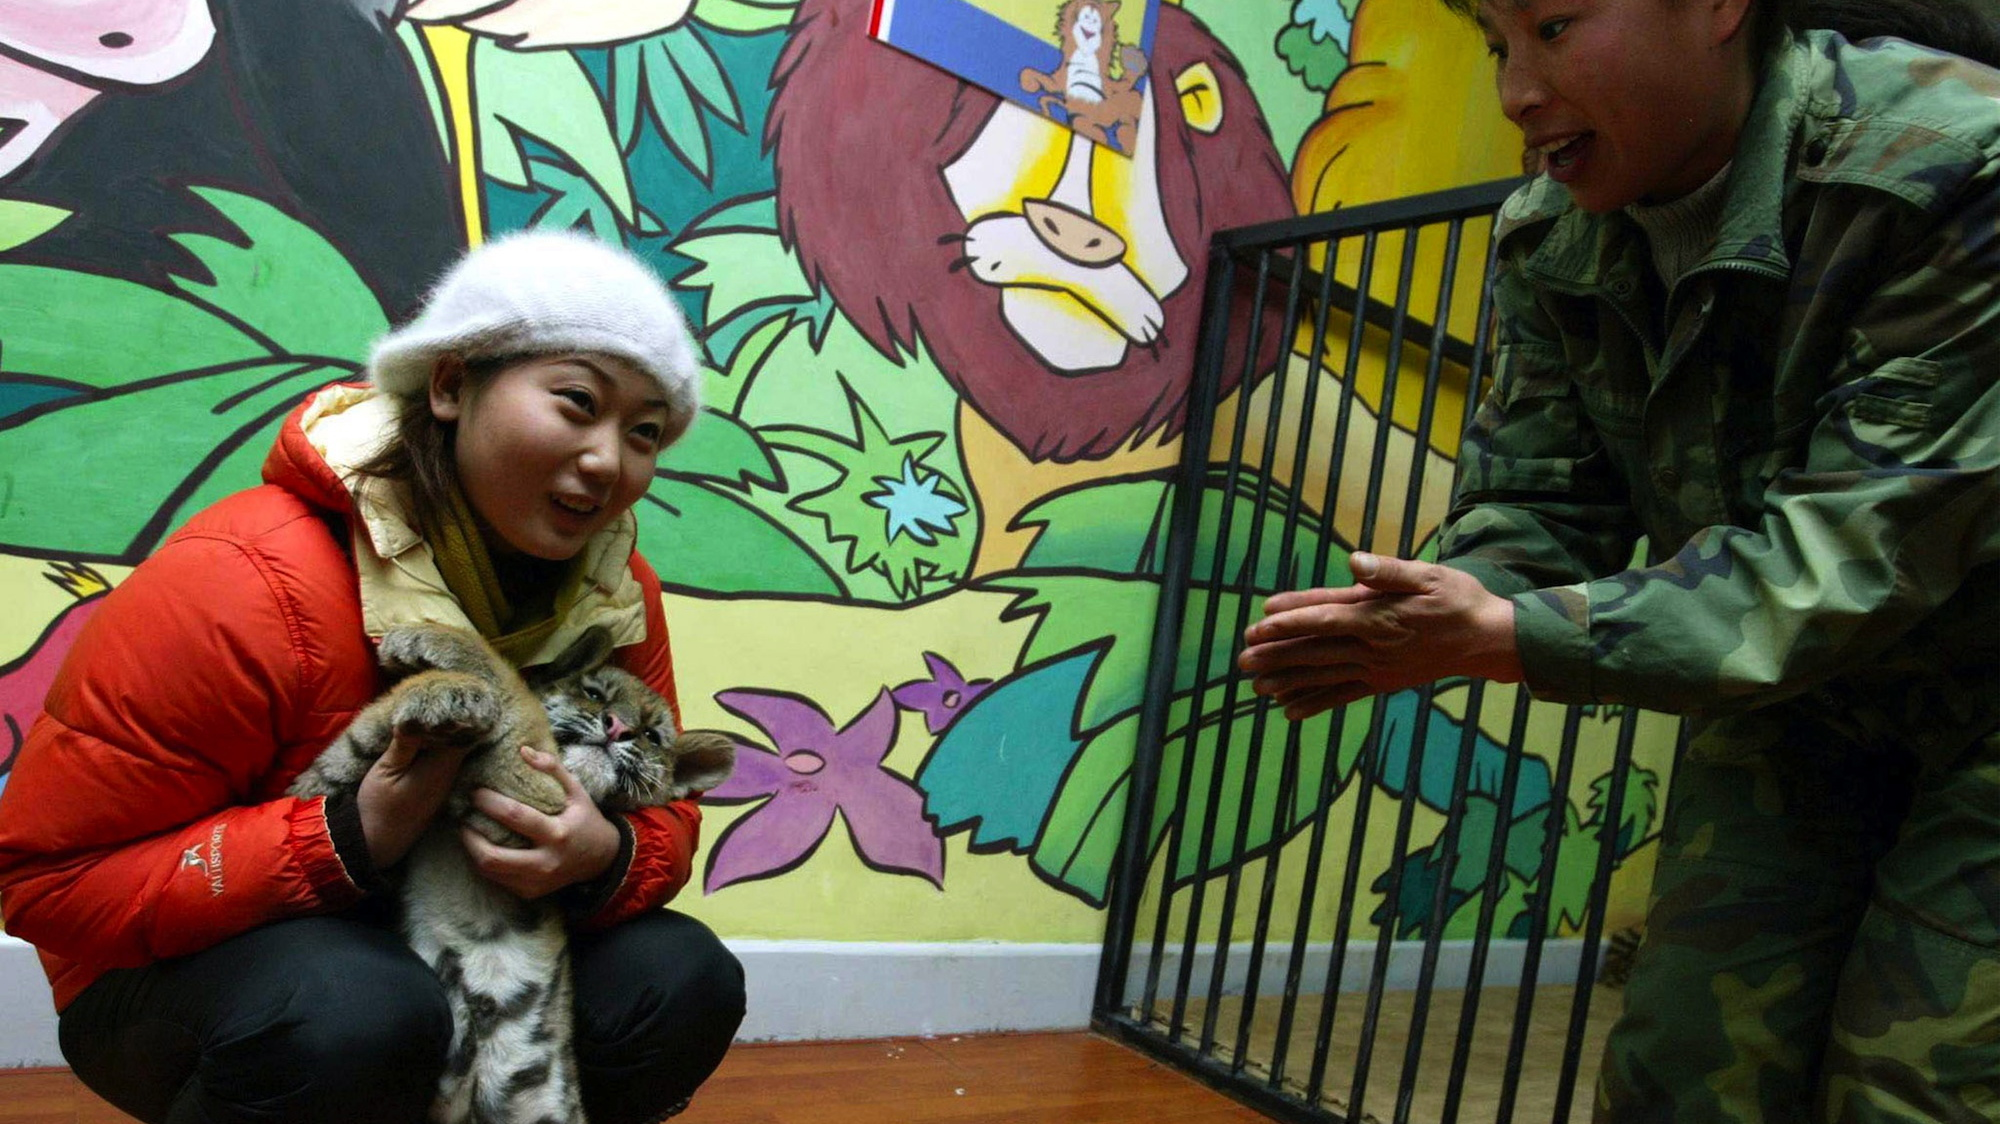 A customer plays with a tiger cub at a shopping centre in Shenyang December 12, 2002.